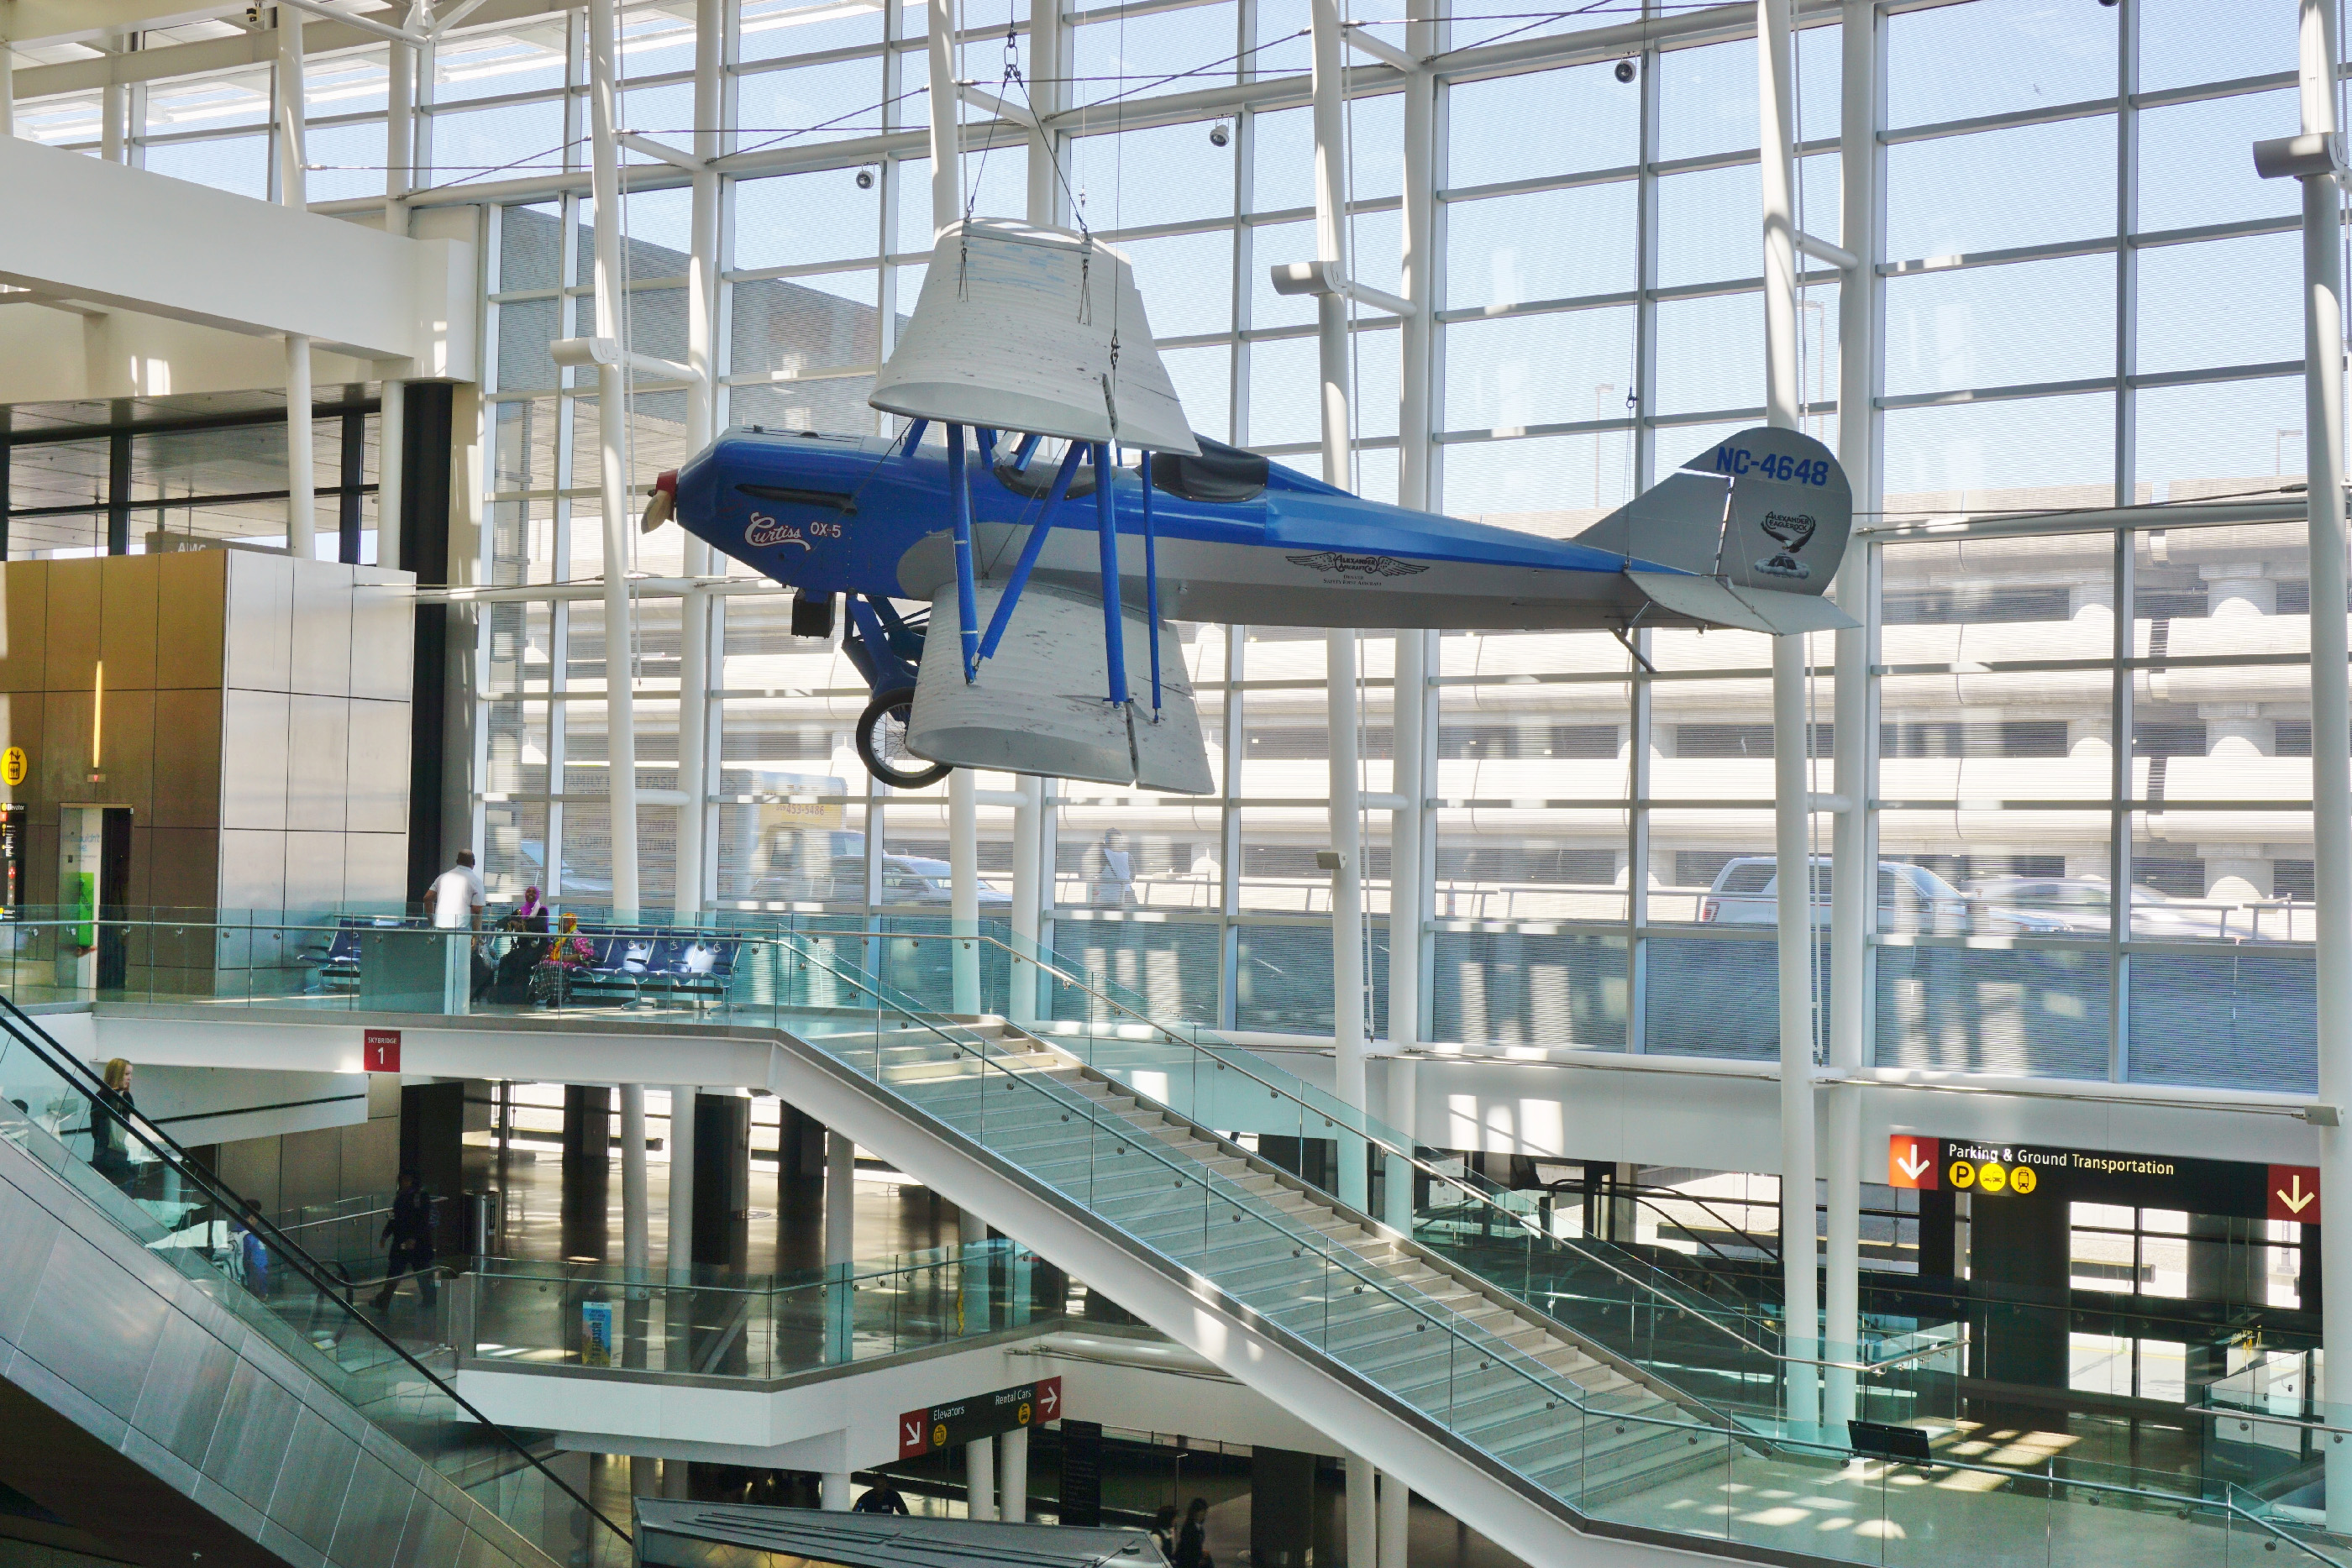 The Sea-Tac Seattle-Tacoma International Airport (SEA) is the largest airport in the Pacific Northwest of the United States. It is a main hub for Alaska Airlines.